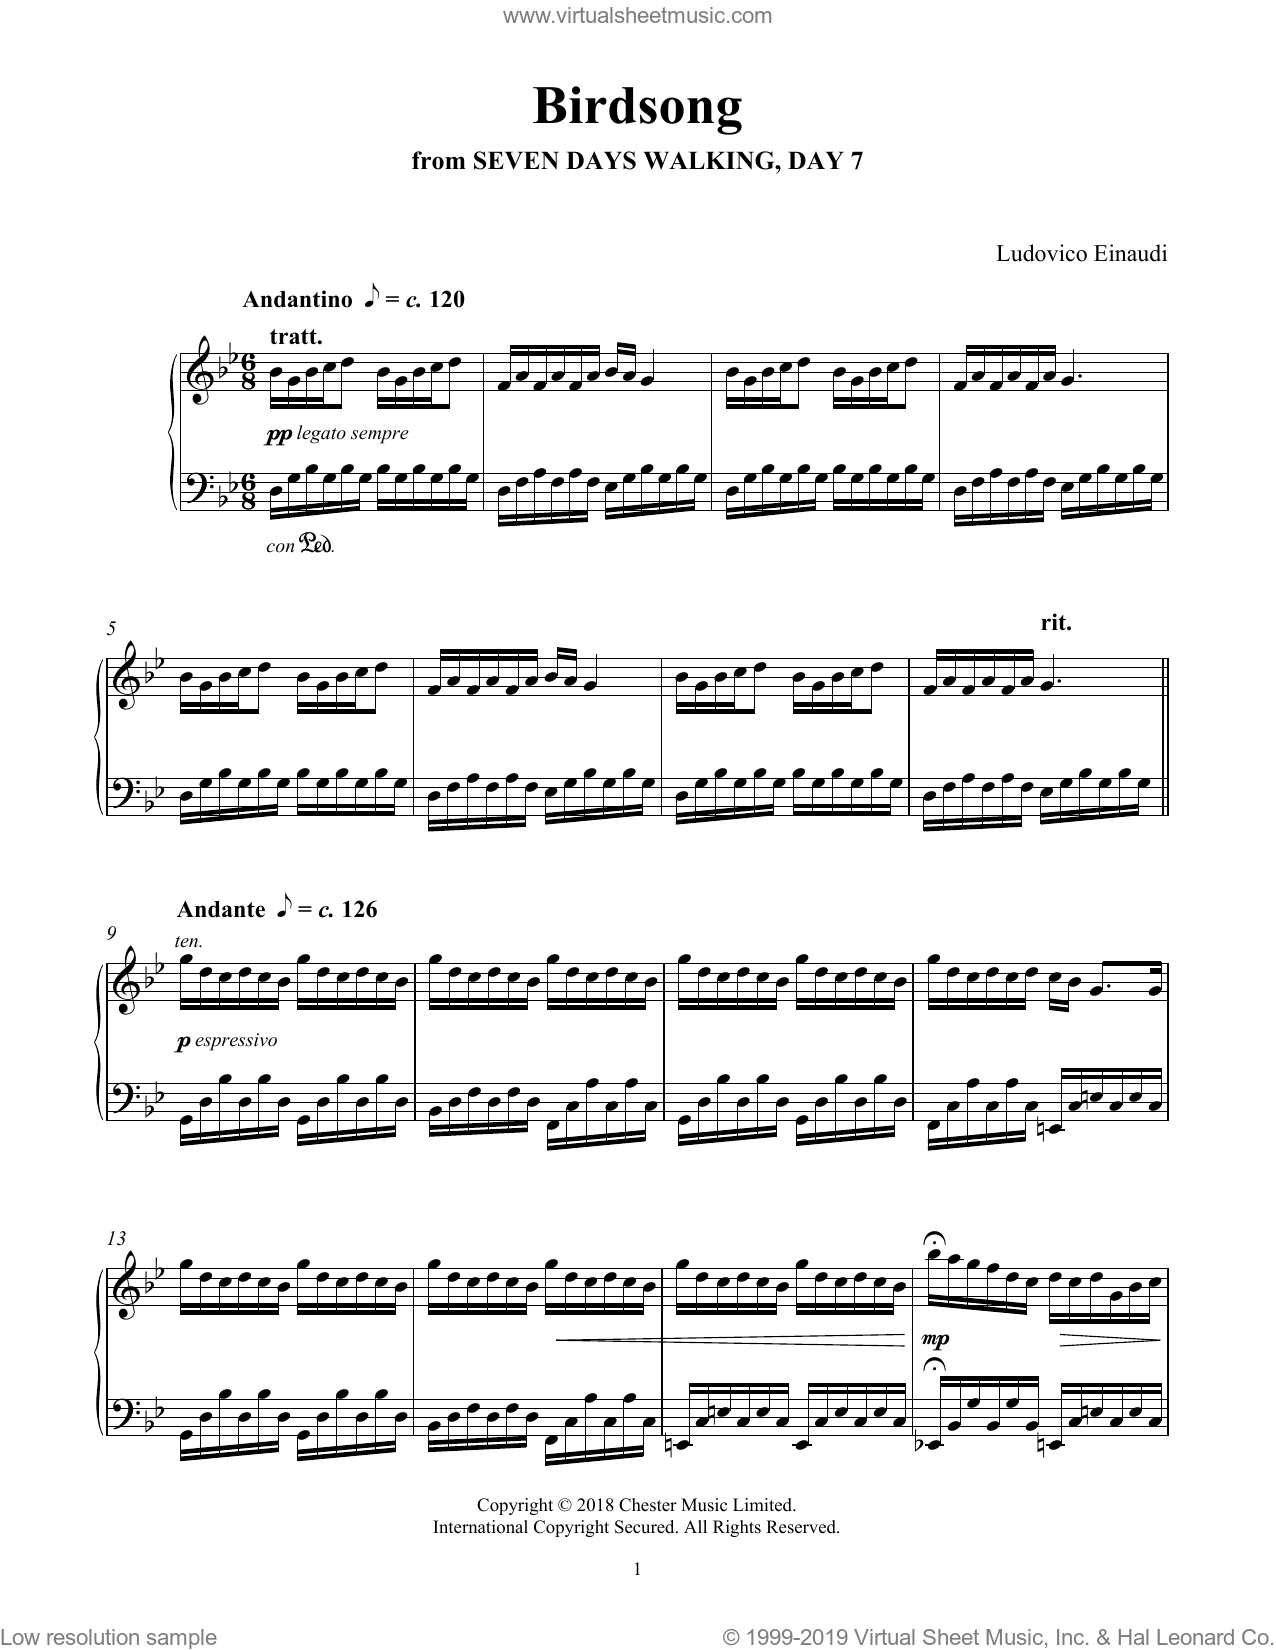 Birdsong (from Seven Days Walking: Day 7) sheet music for piano solo by Ludovico Einaudi, classical score, intermediate skill level